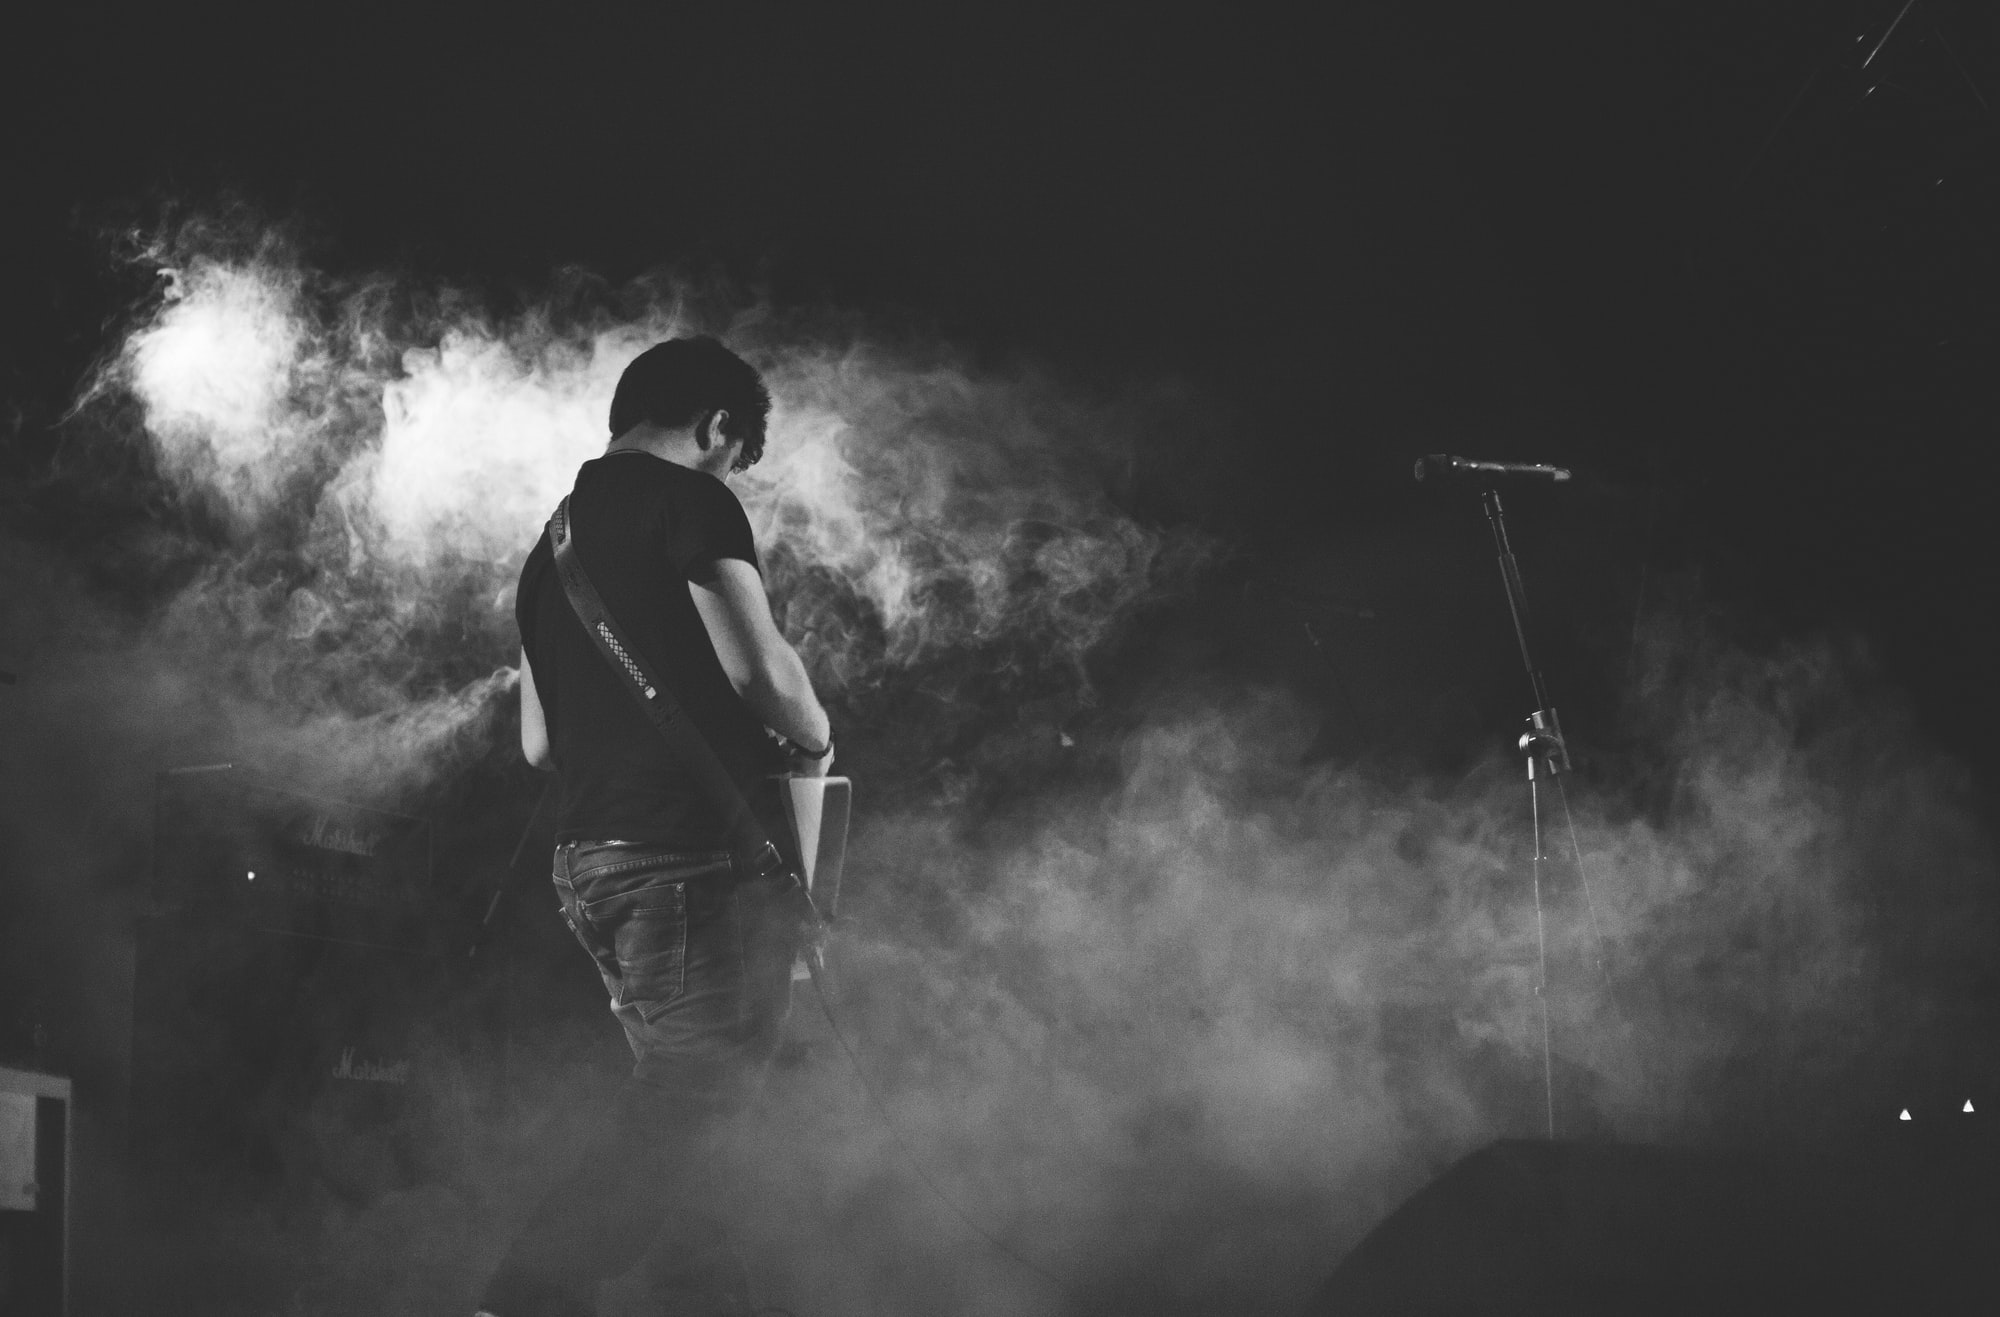 grayscale photography of man performing guitar on stage